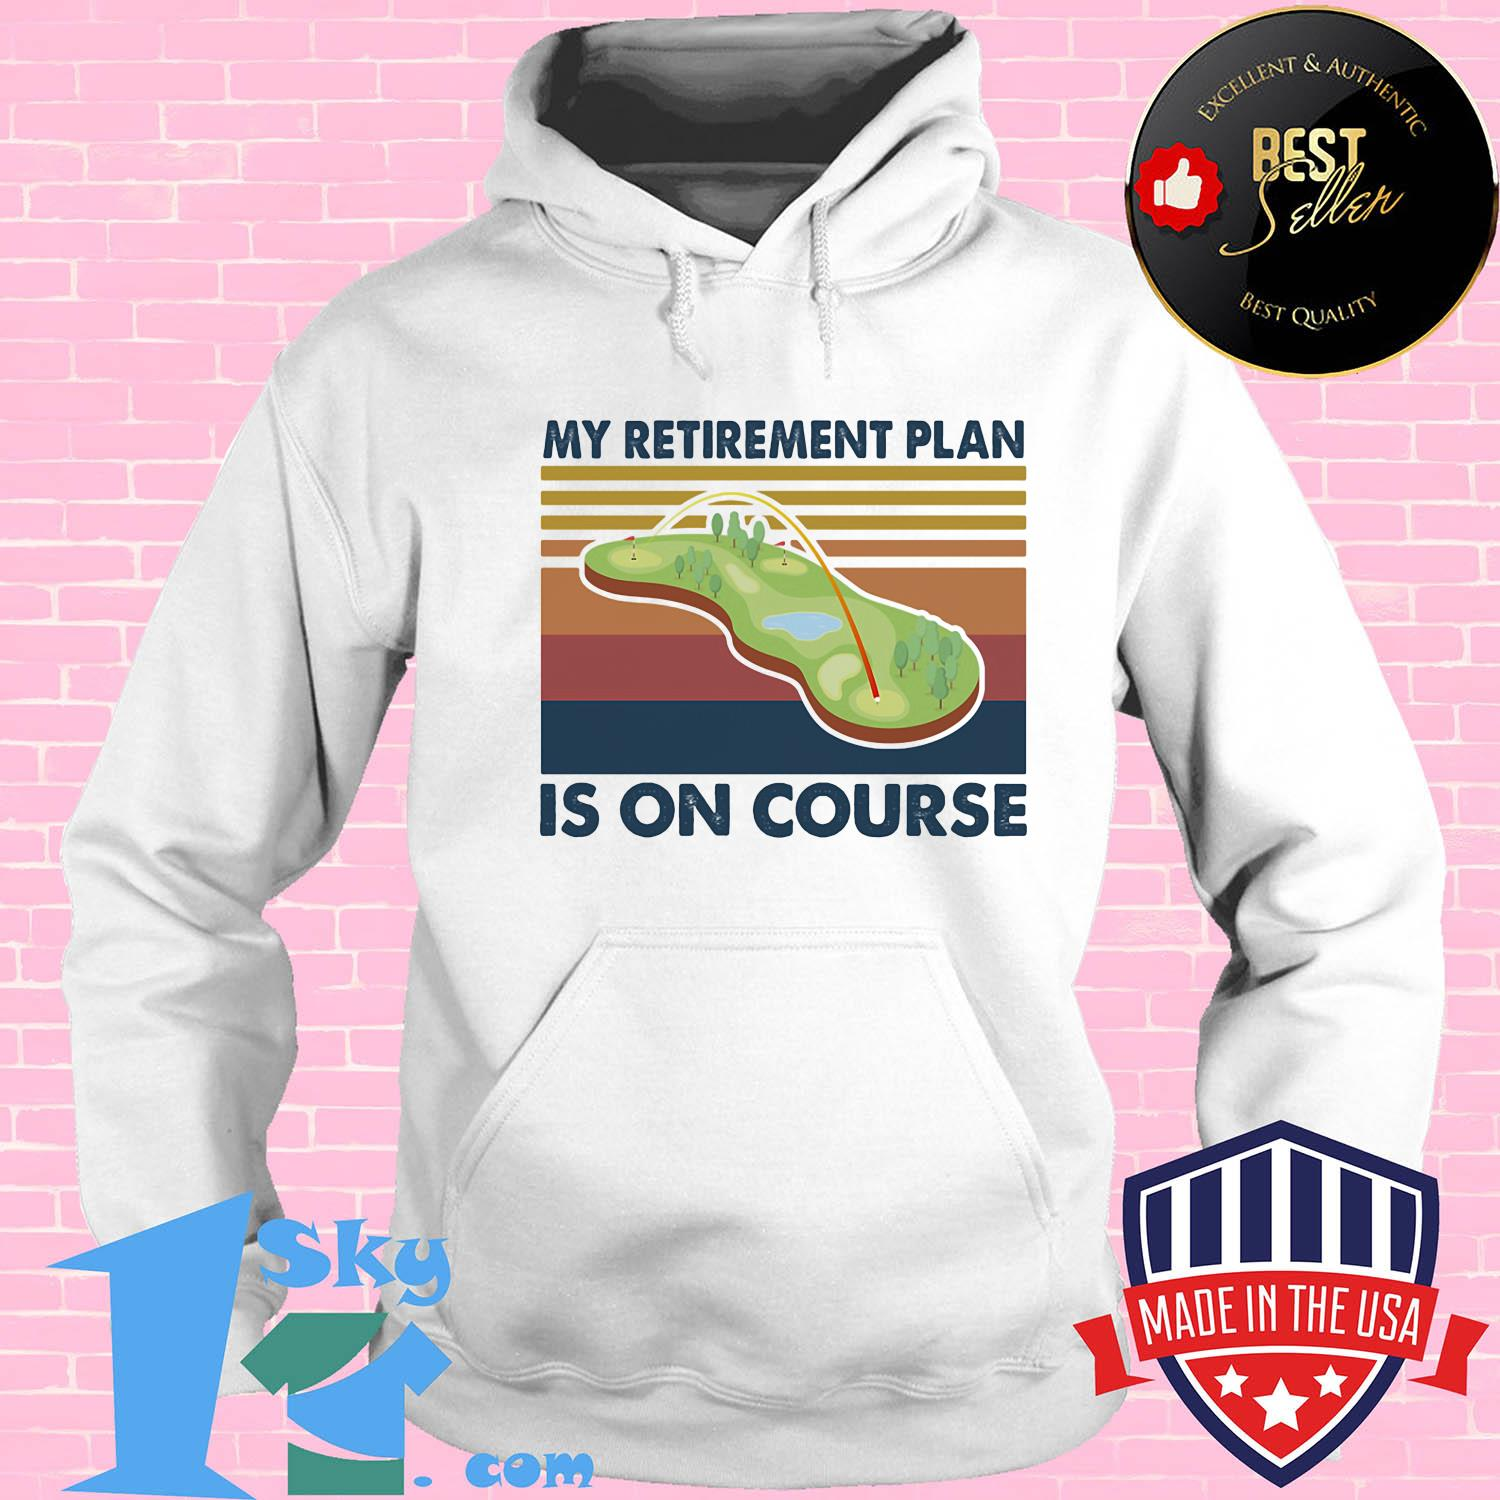 da58733d golf my retirement plan is on course vintage shirt hoodie - Shop trending - We offer all trend shirts - 1SkyTee